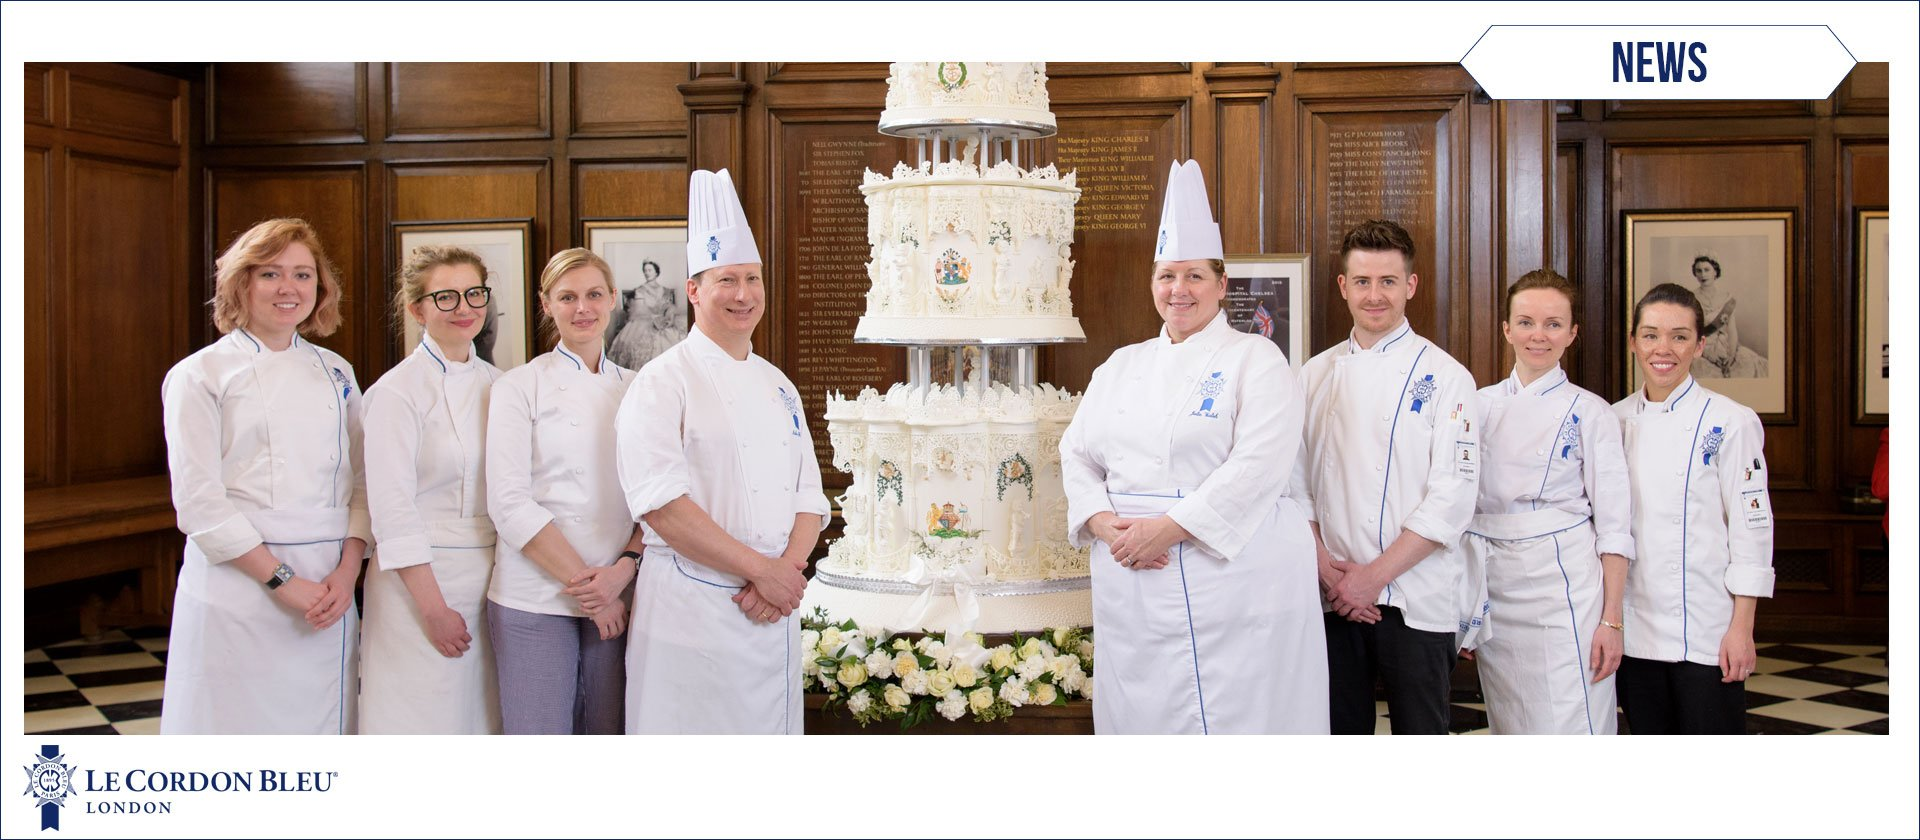 Showcasing the Royal Wedding cake made by Le Cordon Bleu Team